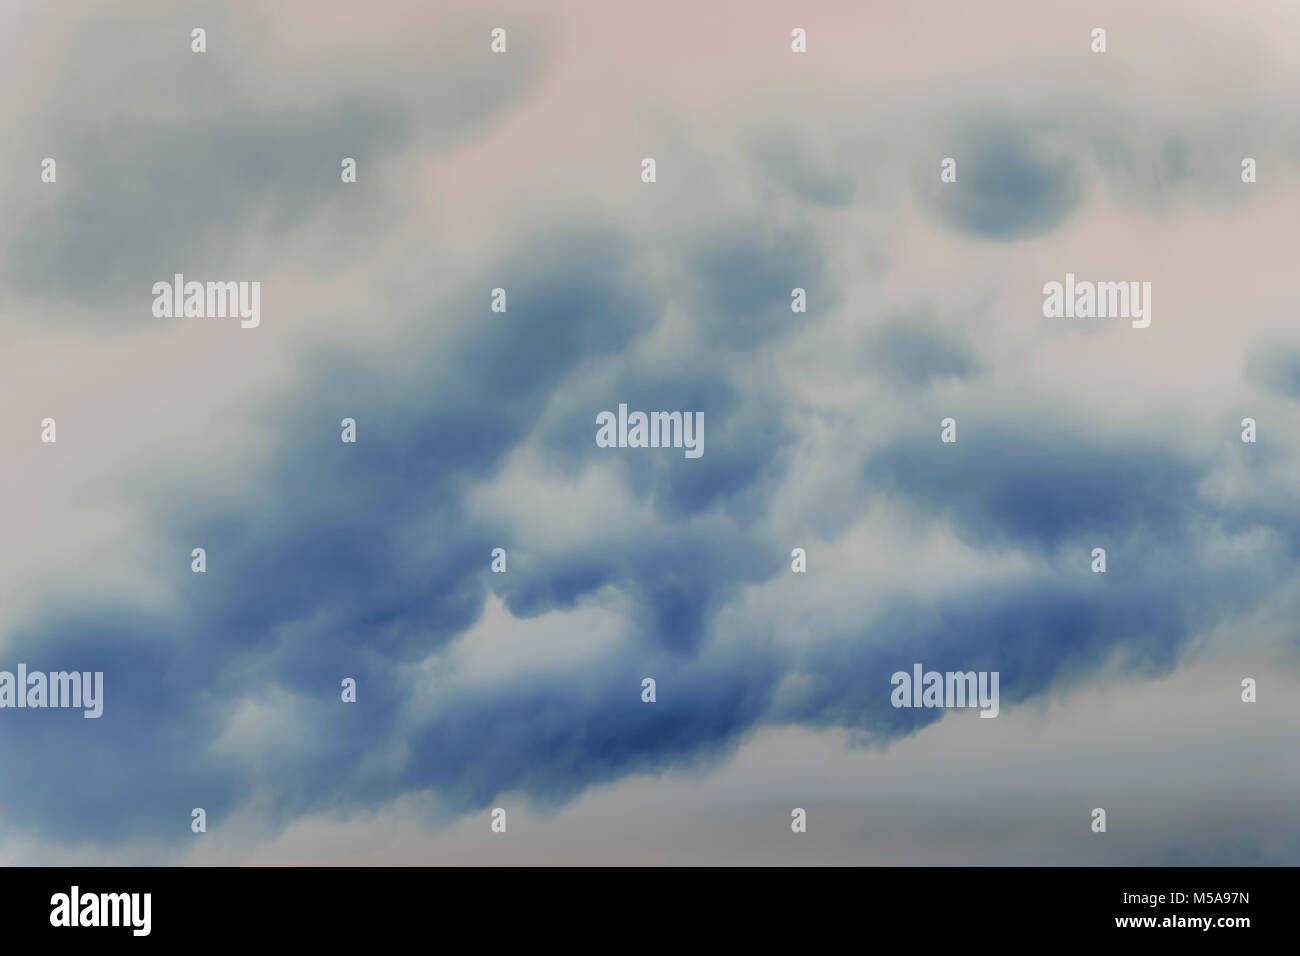 Abstract of overcast sky and storm clouds. - Stock Image